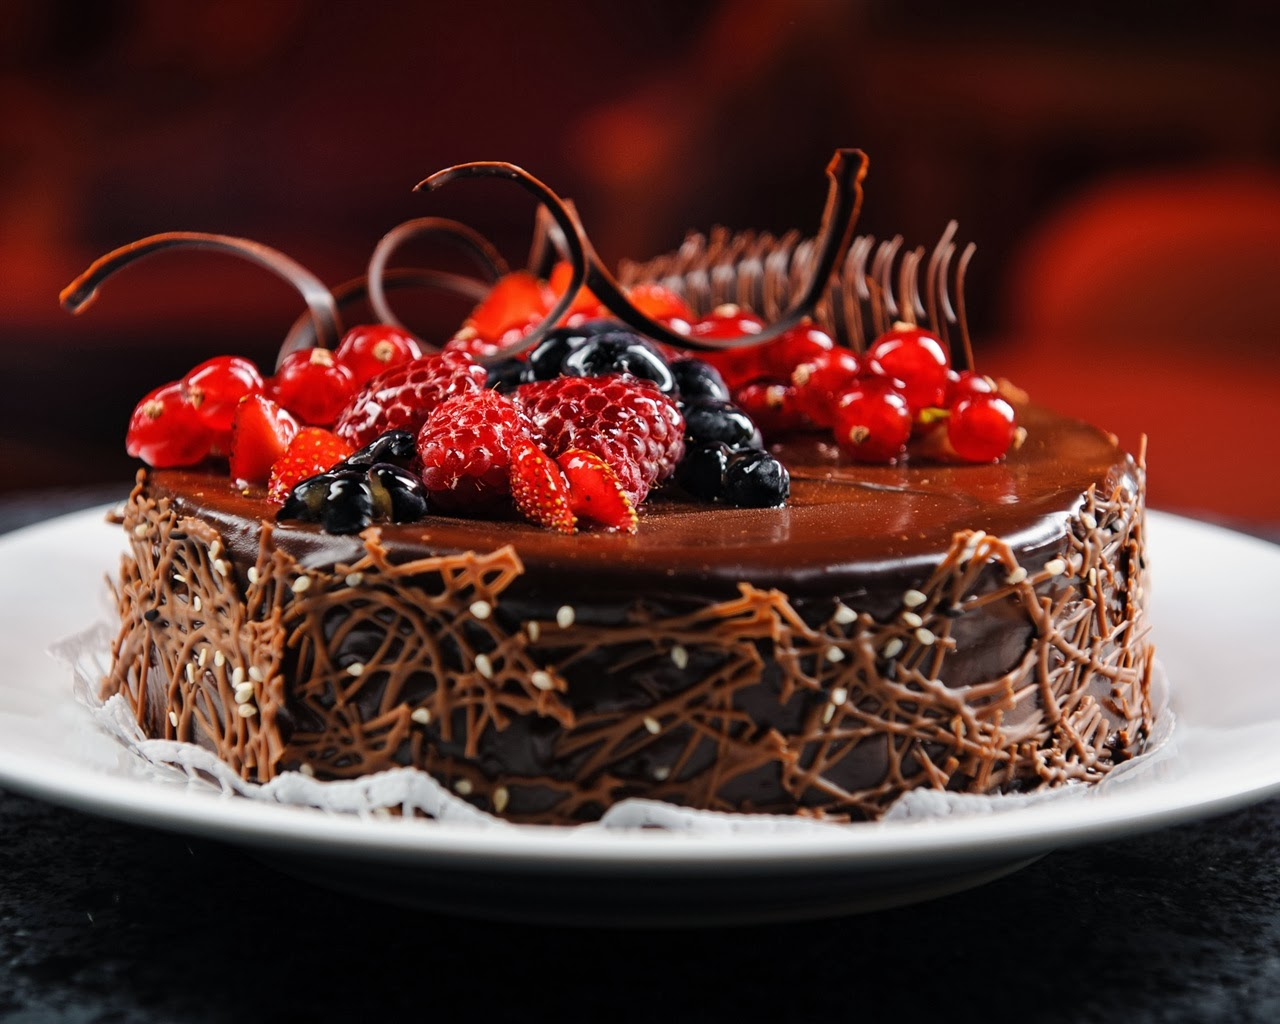 Fruit Chocolate Cake Images : Chocolate and Muffins